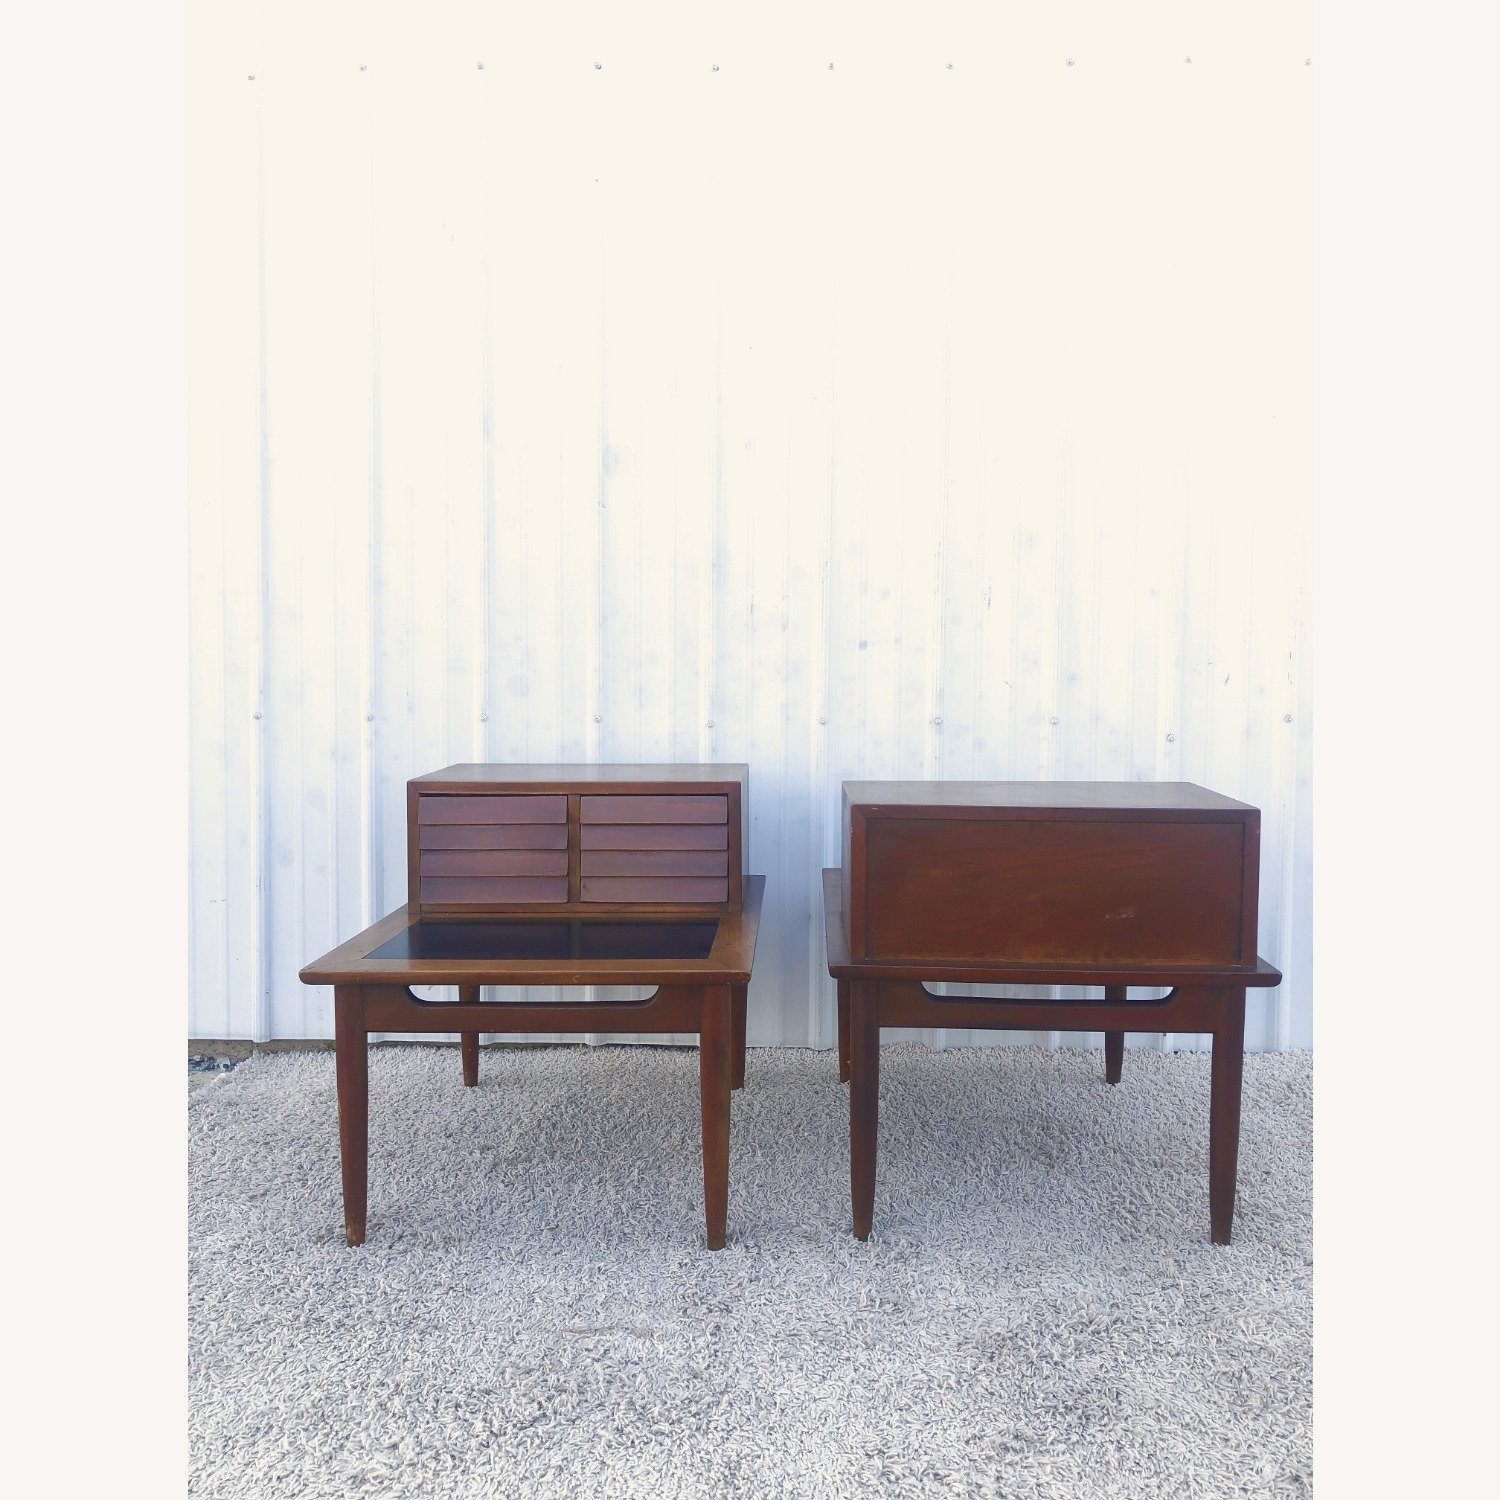 Pair Two Drawer MCM End Tables by Martinsvlle - image-16